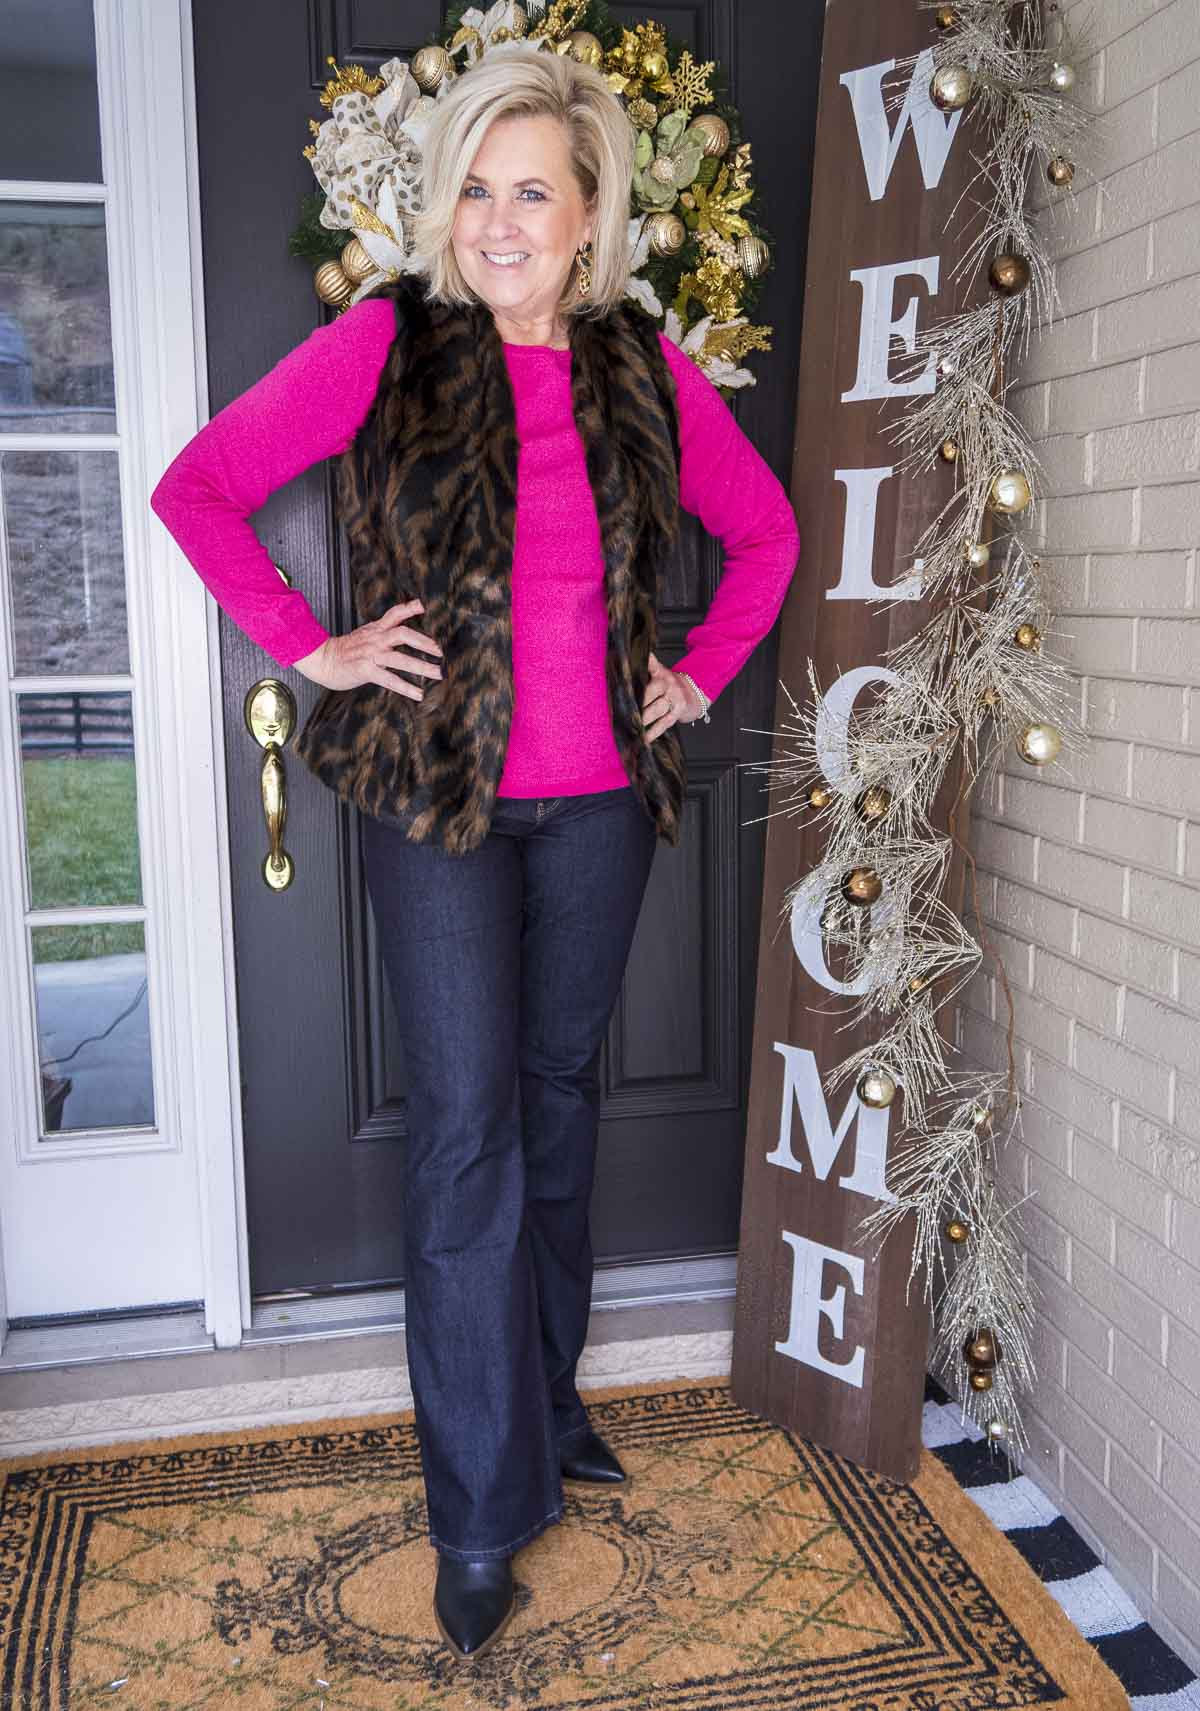 Over 40 Fashion Blogger 50 Is Not Old has her hands on her hips wearing a bright pink sweater with a tiger print faux fur vest, flare jeans, and black pointy toe boots